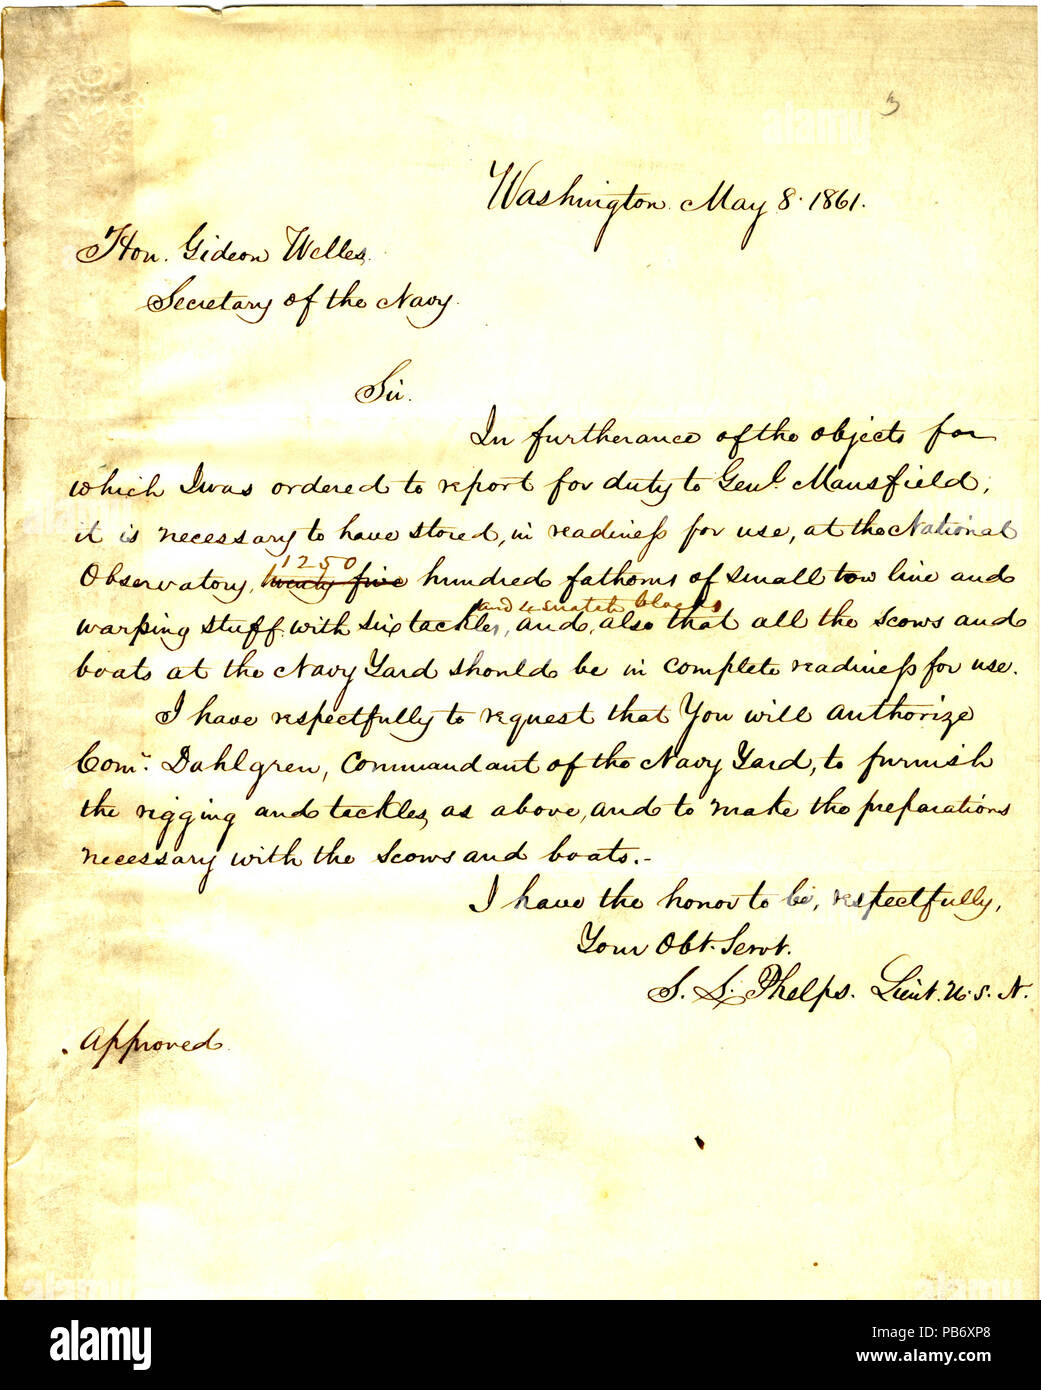 899 Letter from (Seth Ledyard) Phelps, Washington, D. C., to Gideon Welles, May 8, 1861 - Stock Image